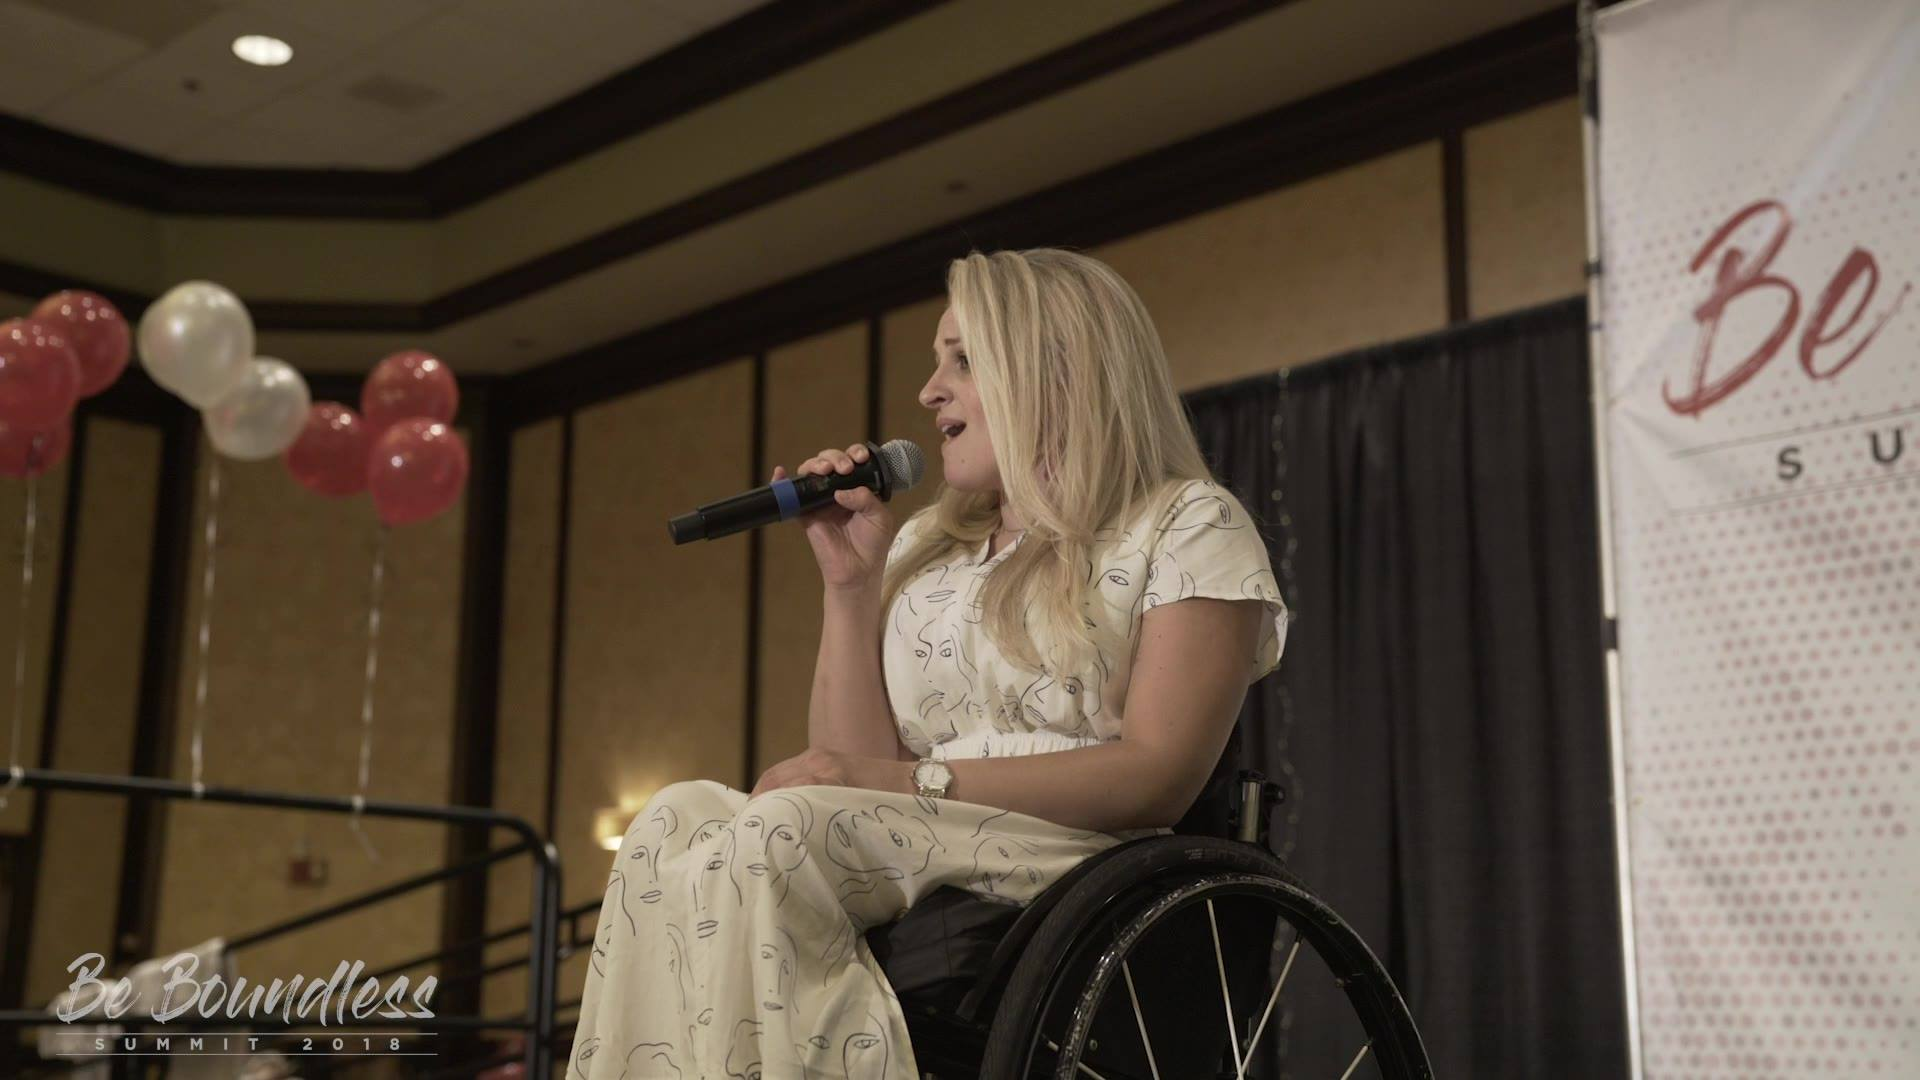 WOW!! Ali Stroker's performance at the Be Boundless Summit!! #beboundless18 OG Rollette